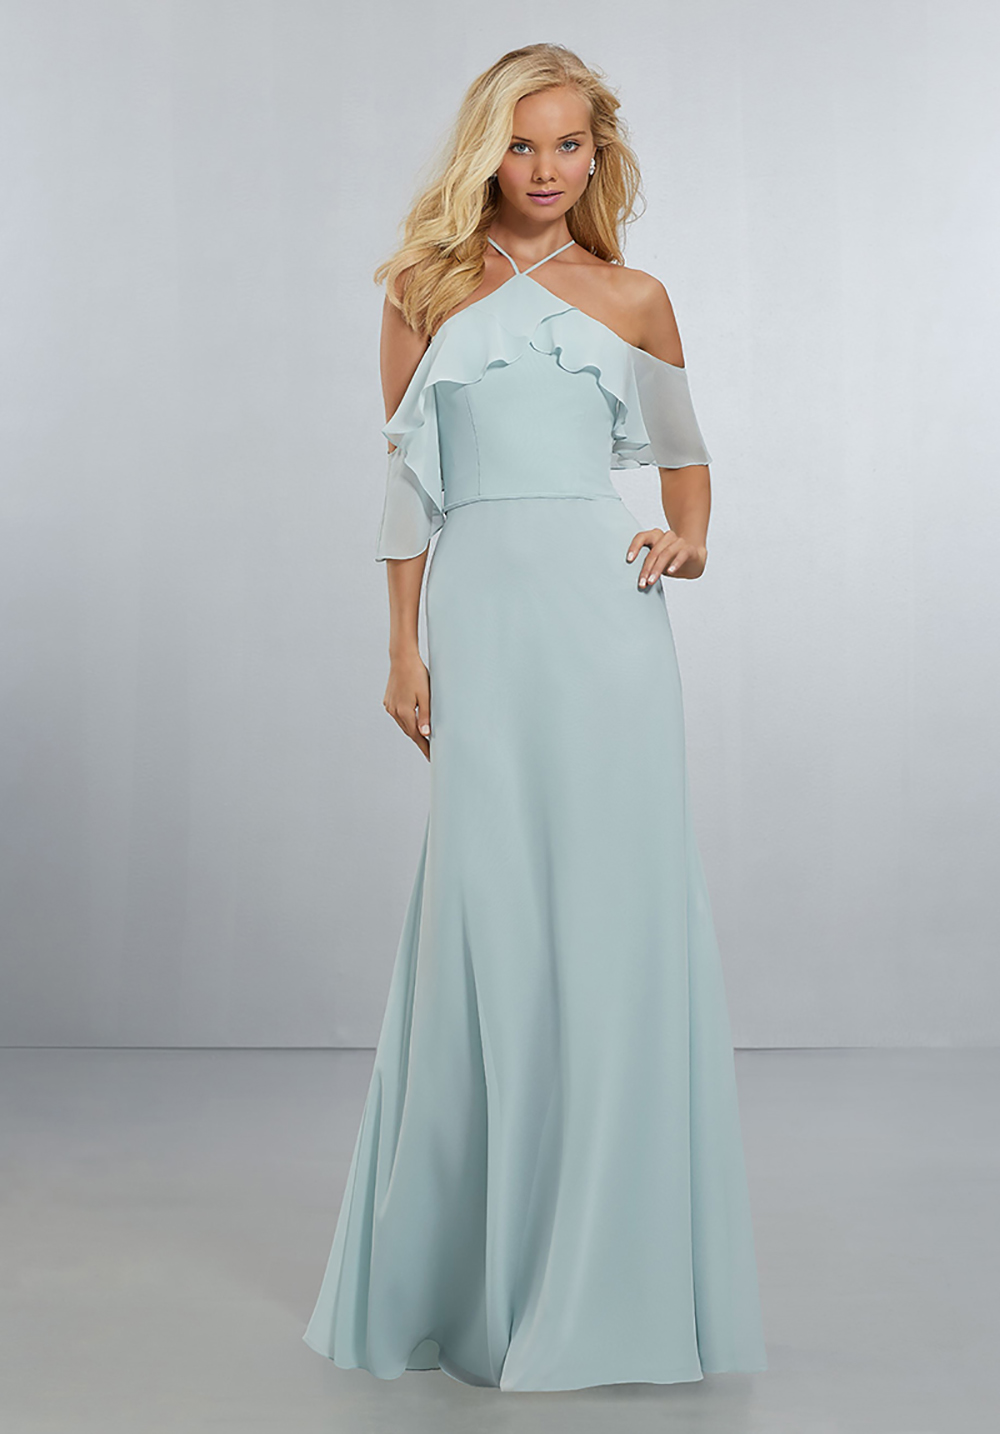 Mori lee bridesmaids designers mori lee bridesmaid dresses mori lee 21551 ombrellifo Images